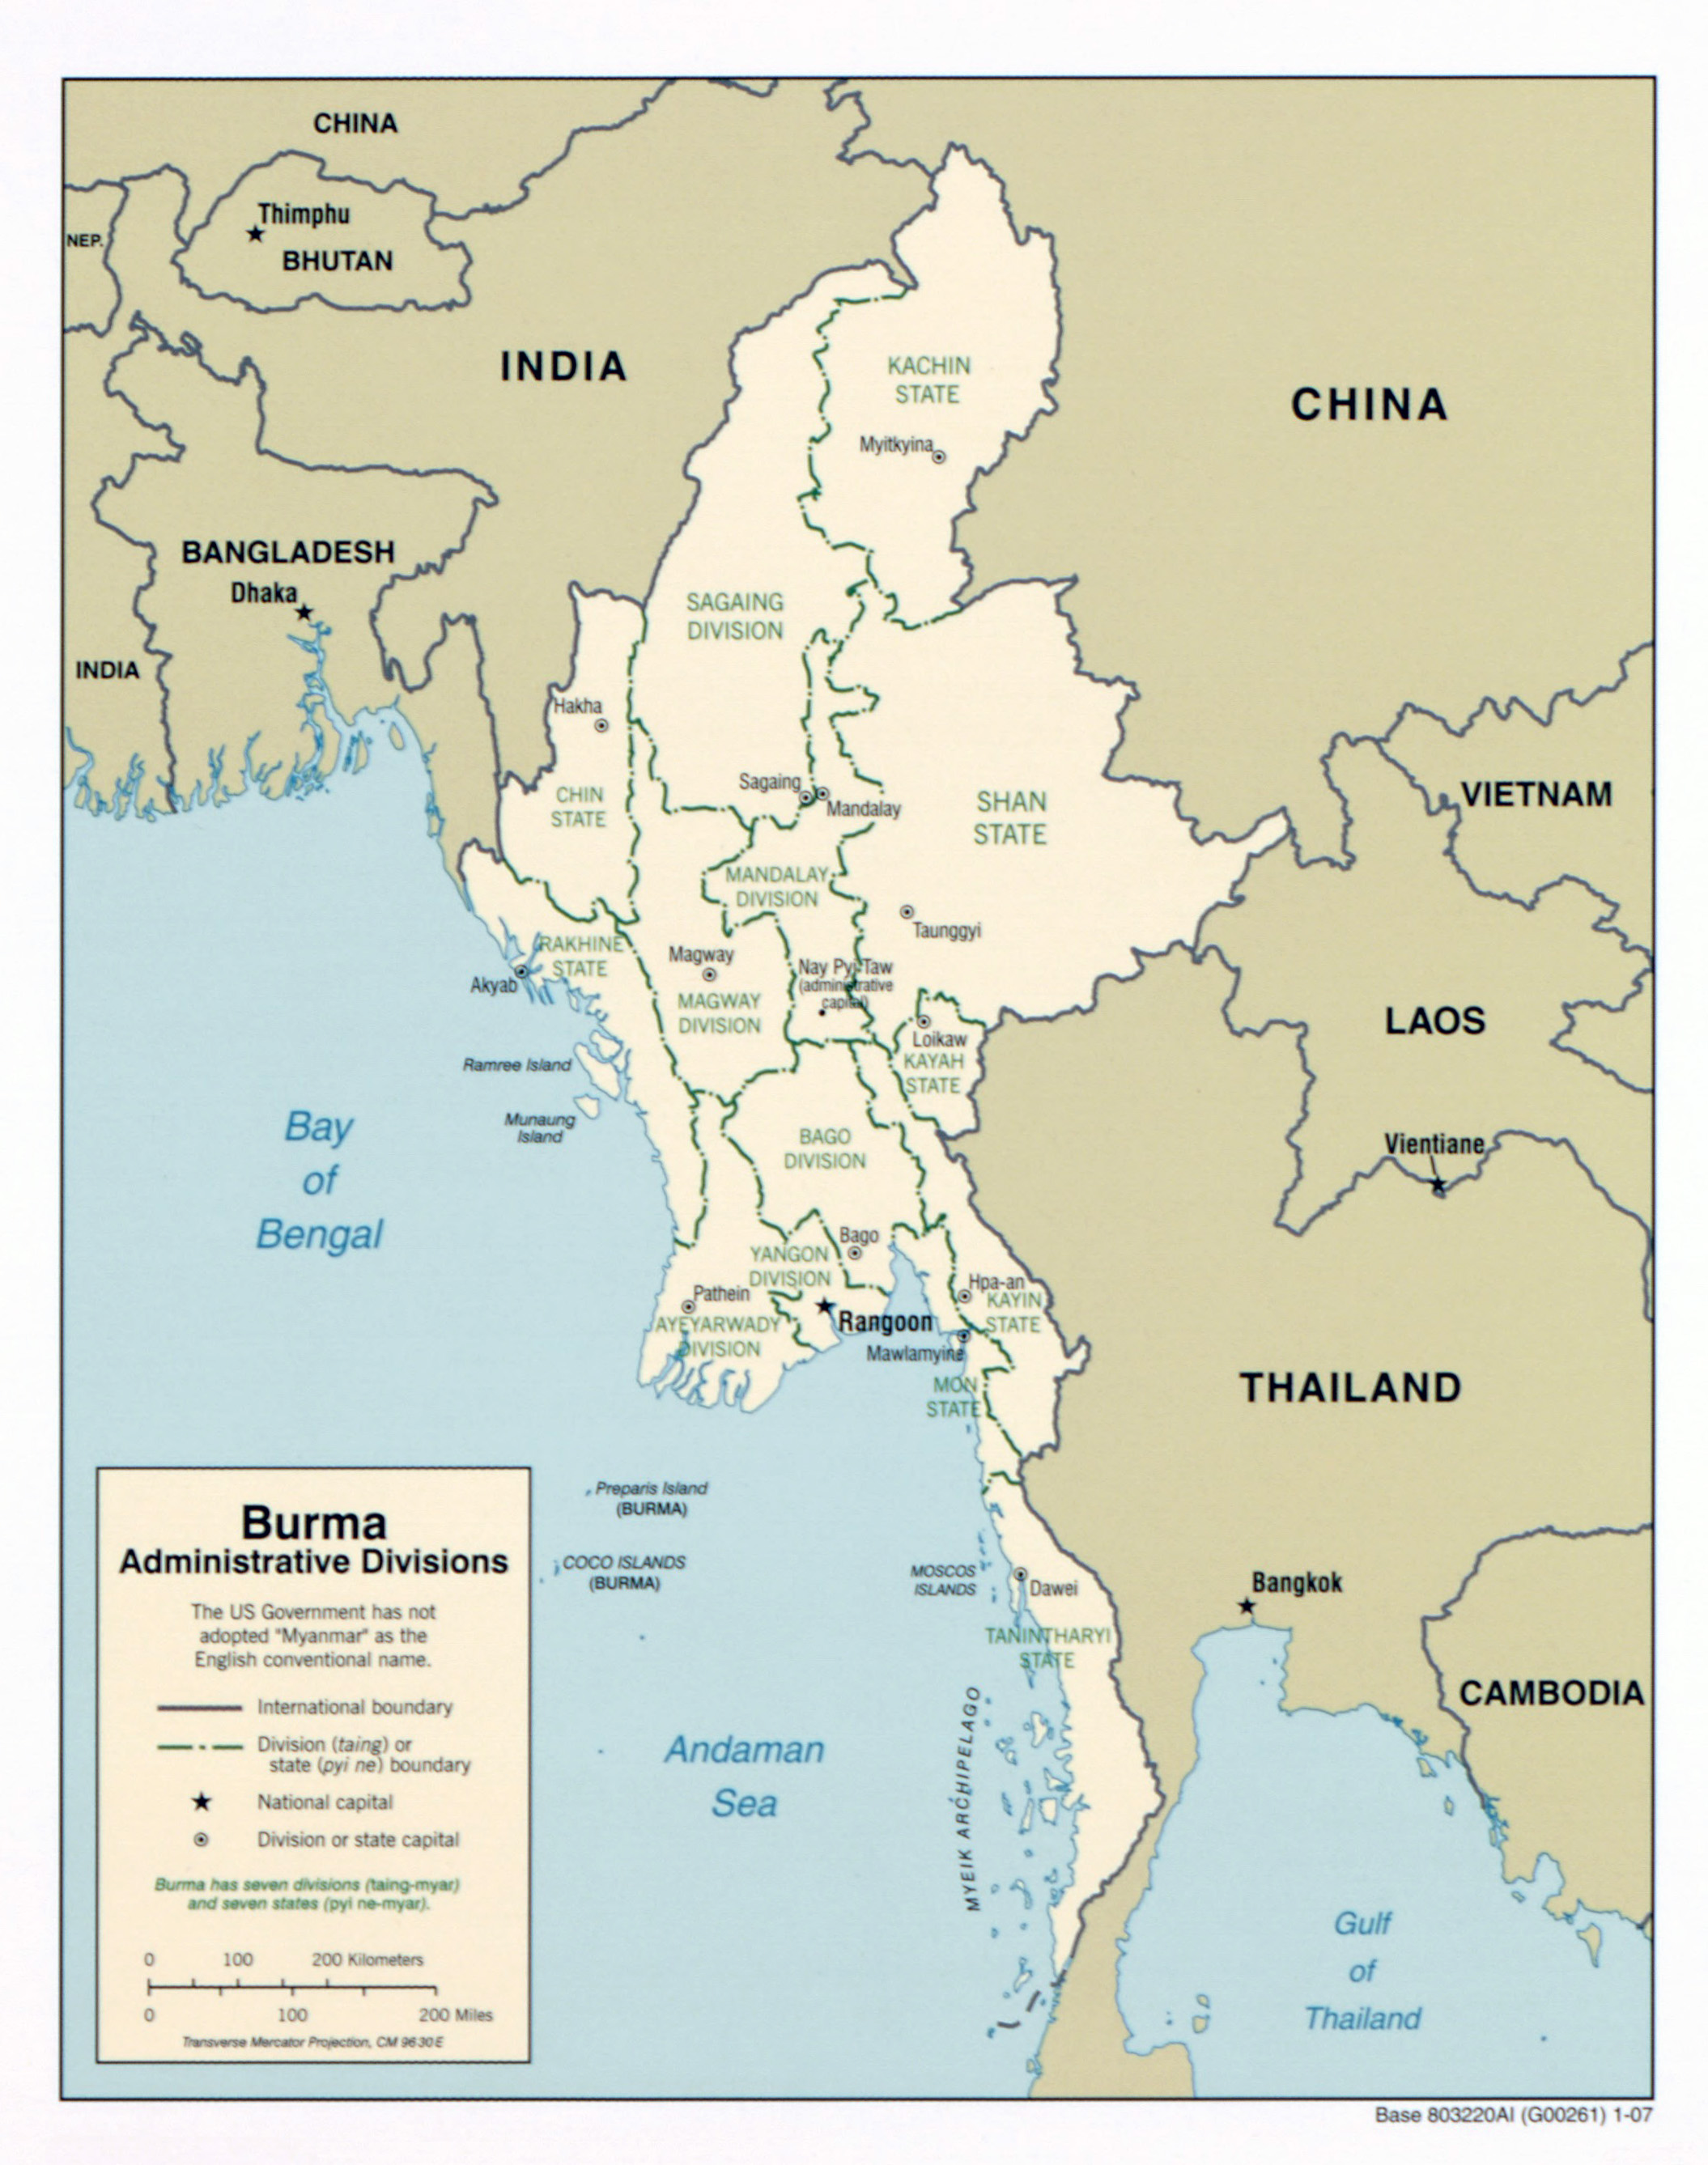 Large scale administrative divisions map of Burma Myanmar 2007